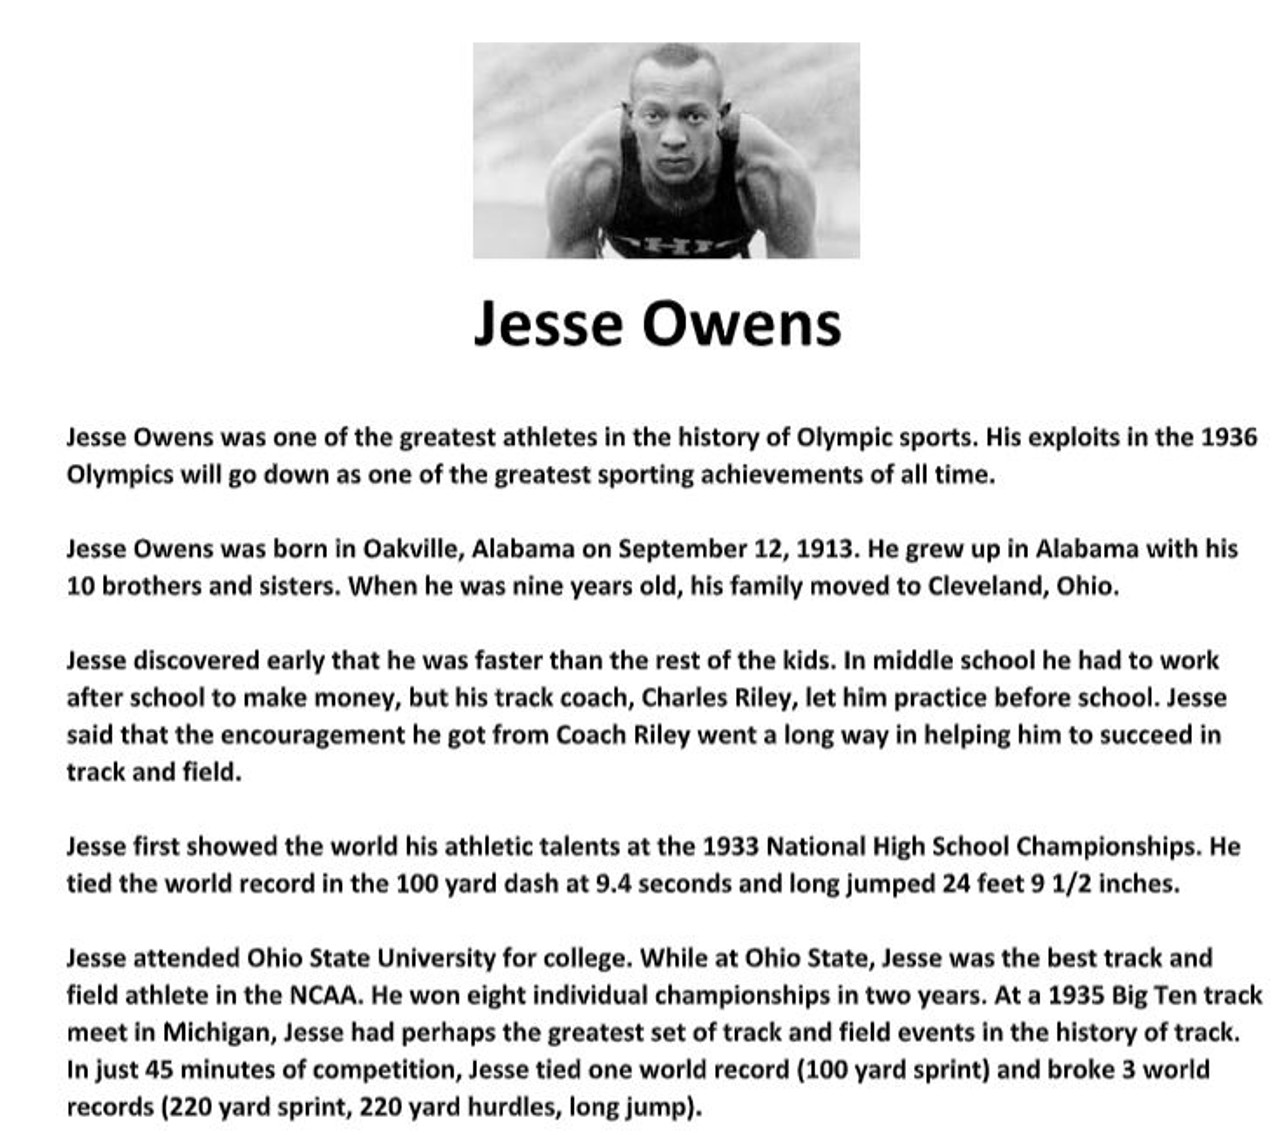 Jesse Owens Biography Article and Assignment Worksheet - Amped Up Learning [ 1135 x 1280 Pixel ]